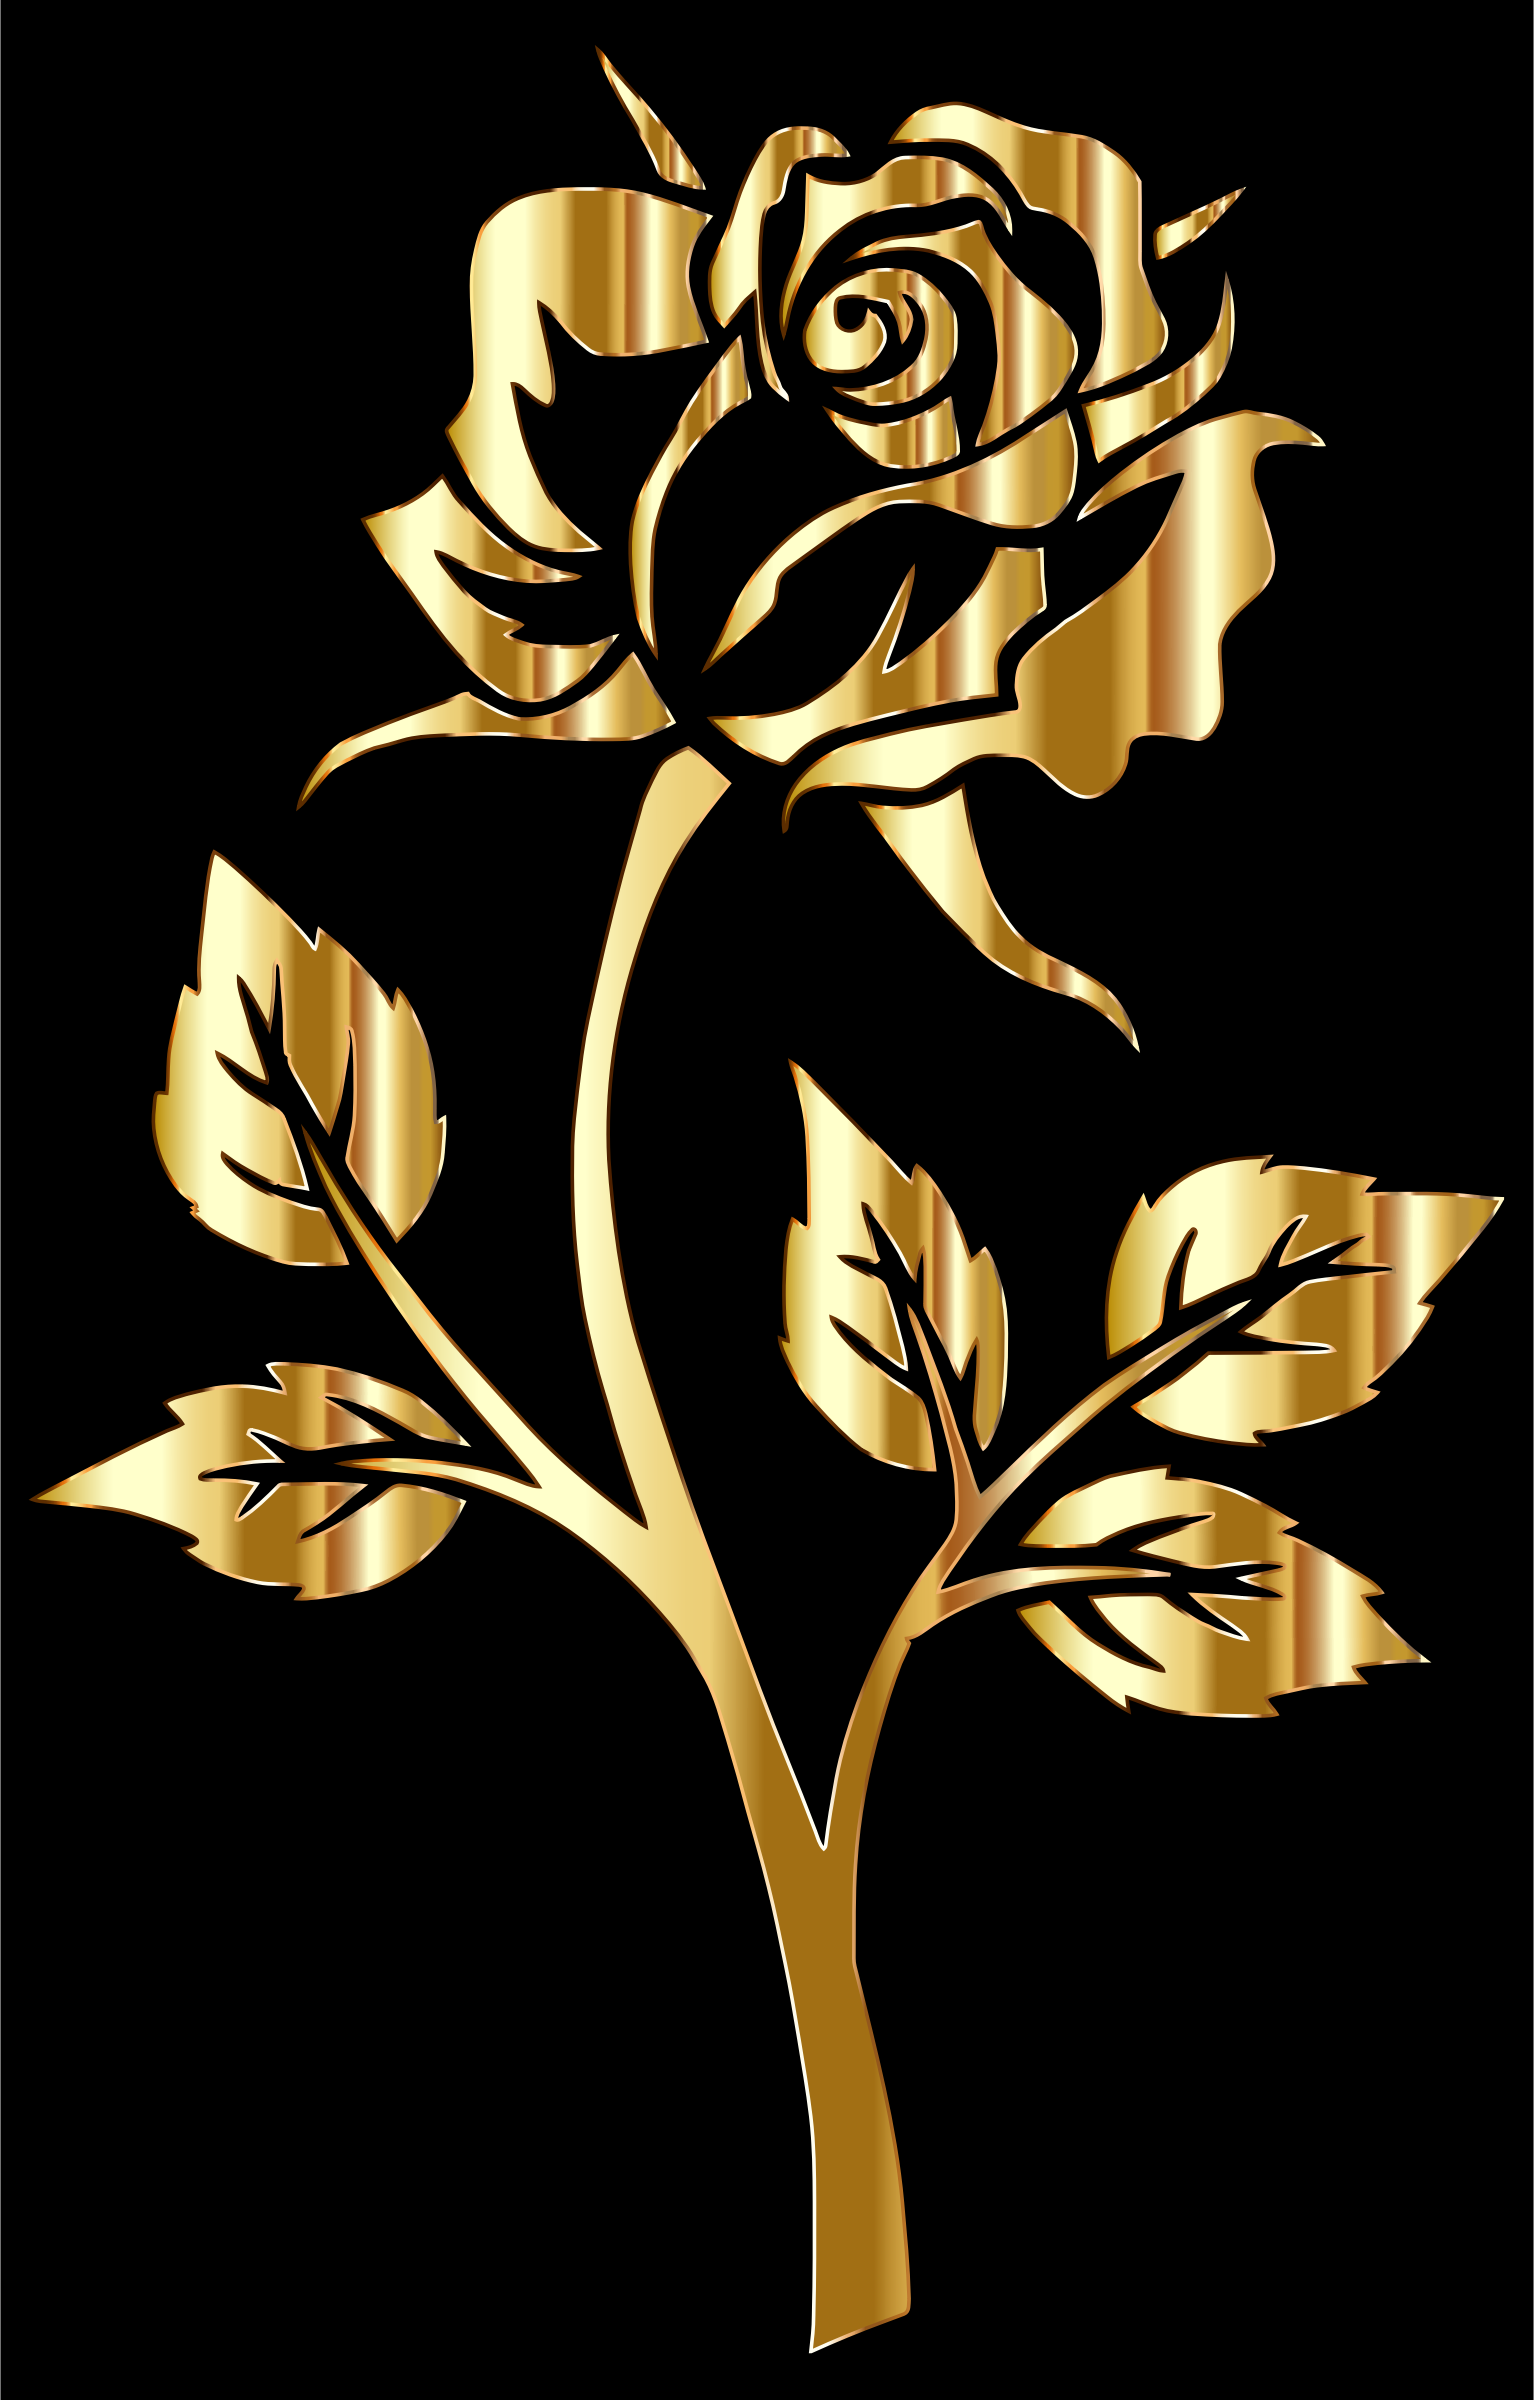 Gold Rose Silhouette by GDJ